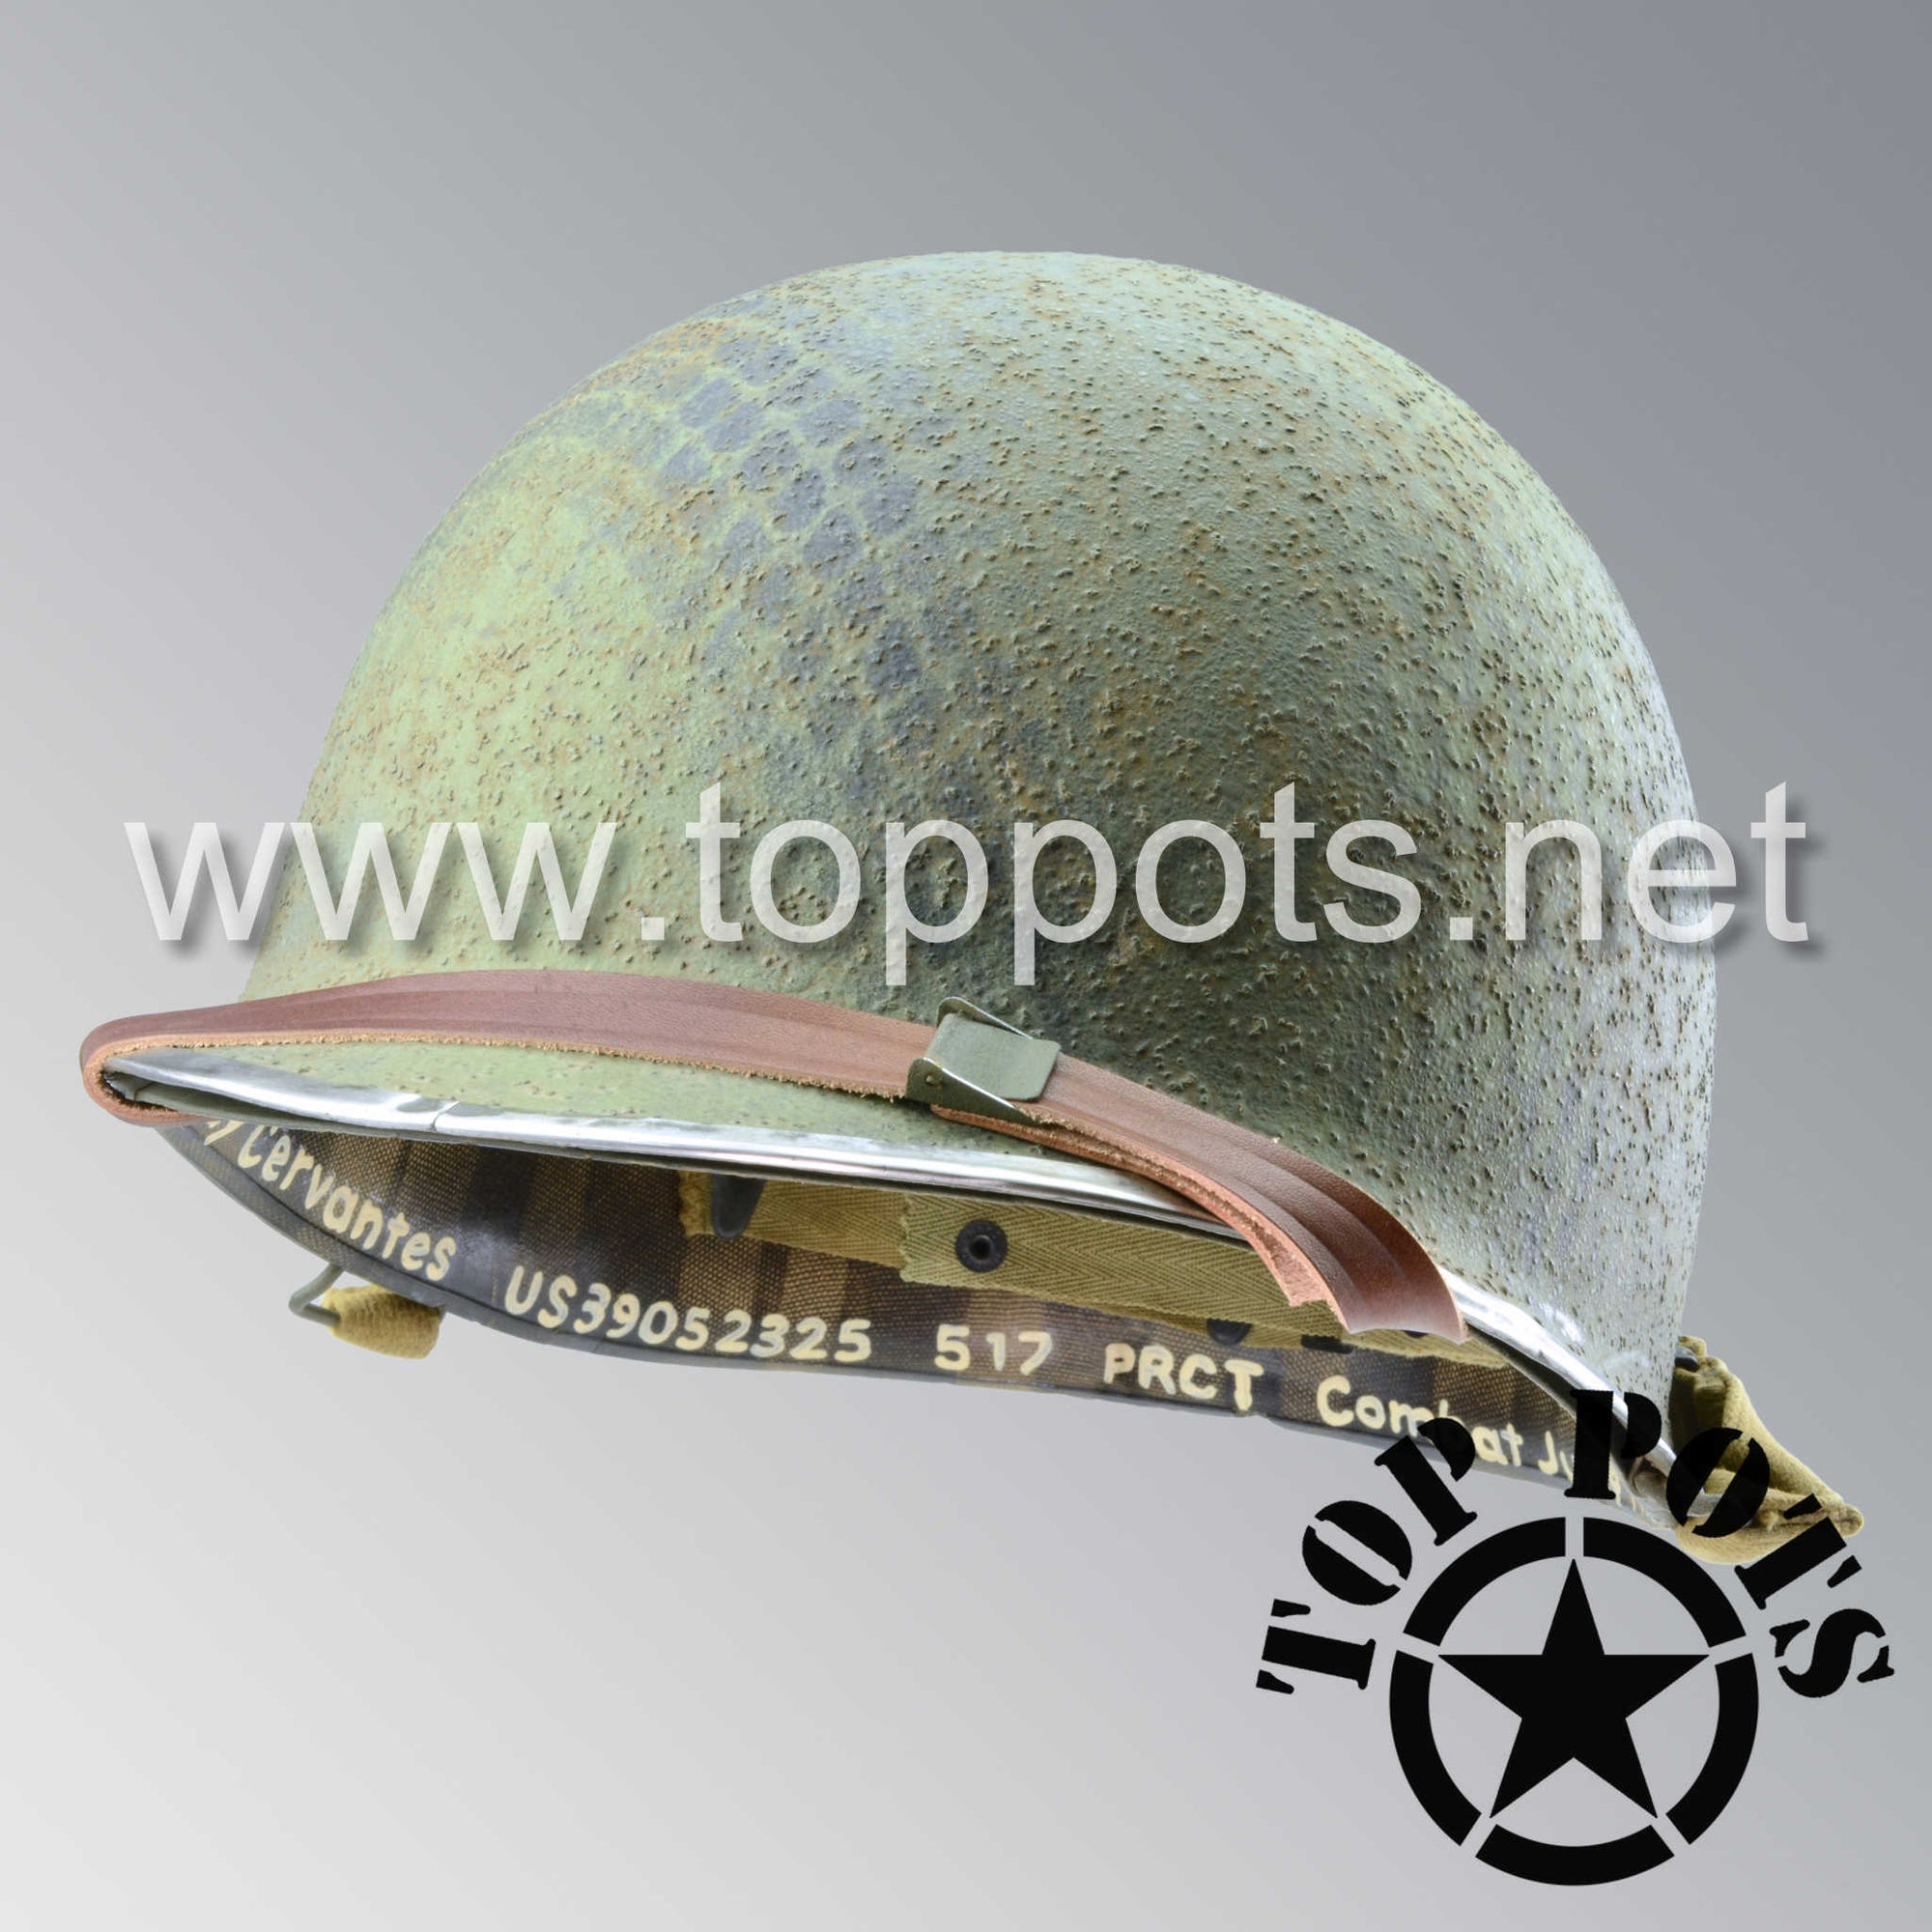 Image 1 of WWII US Army Aged Original M1C Paratrooper Airborne Helmet Shell and Liner with 517th PRCT Emblem